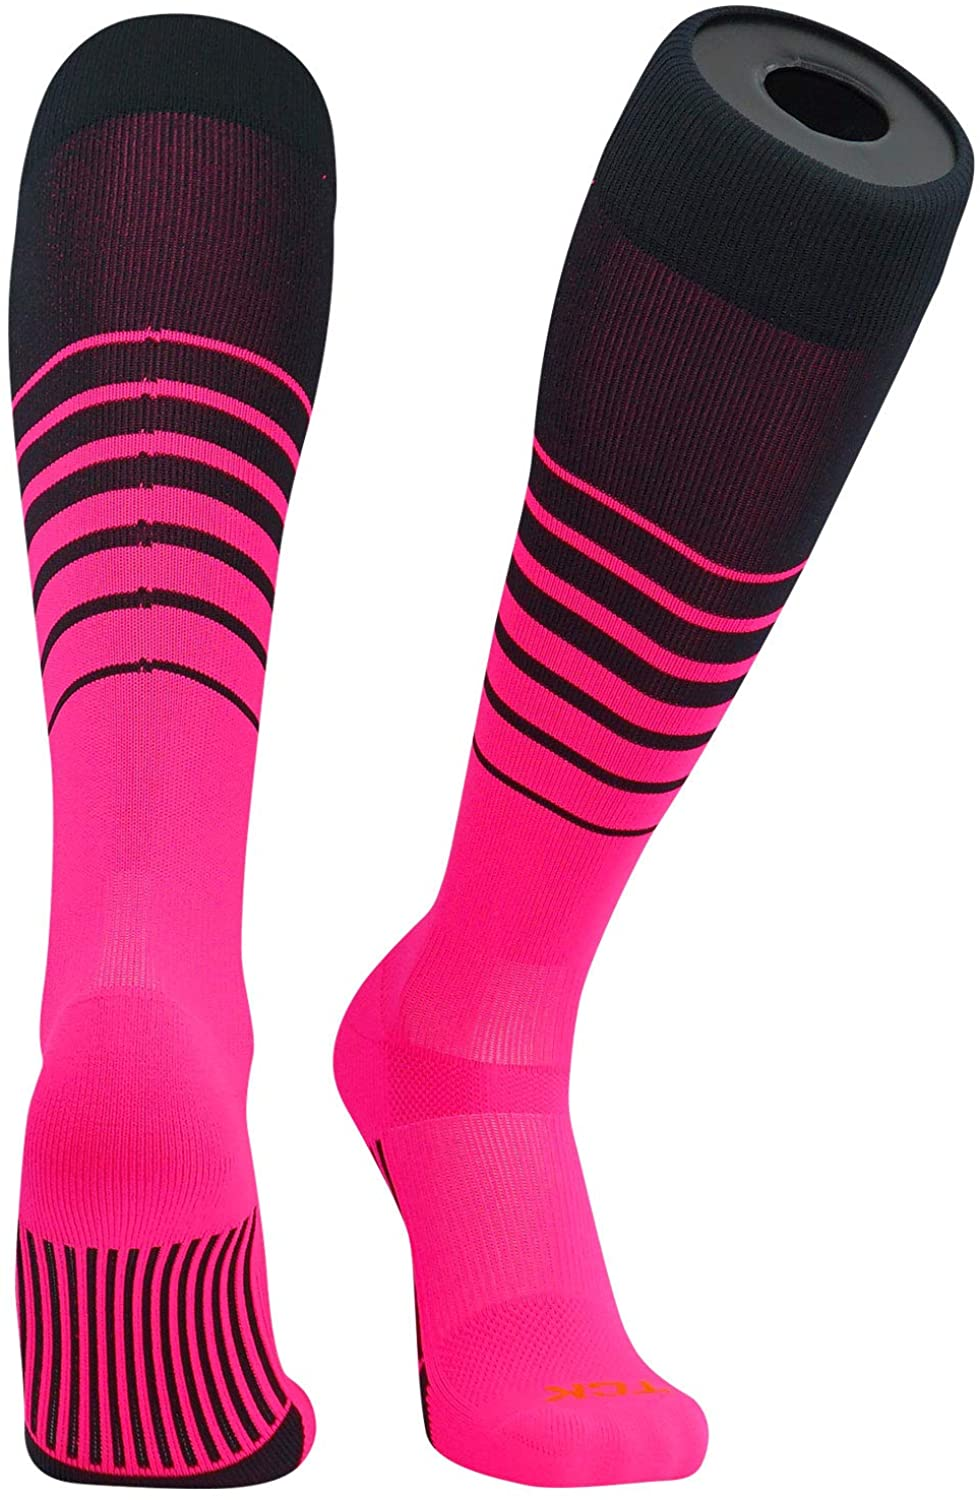 TCK Elite Breaker Fade Lines Knee High Socks Black, Hot Pink